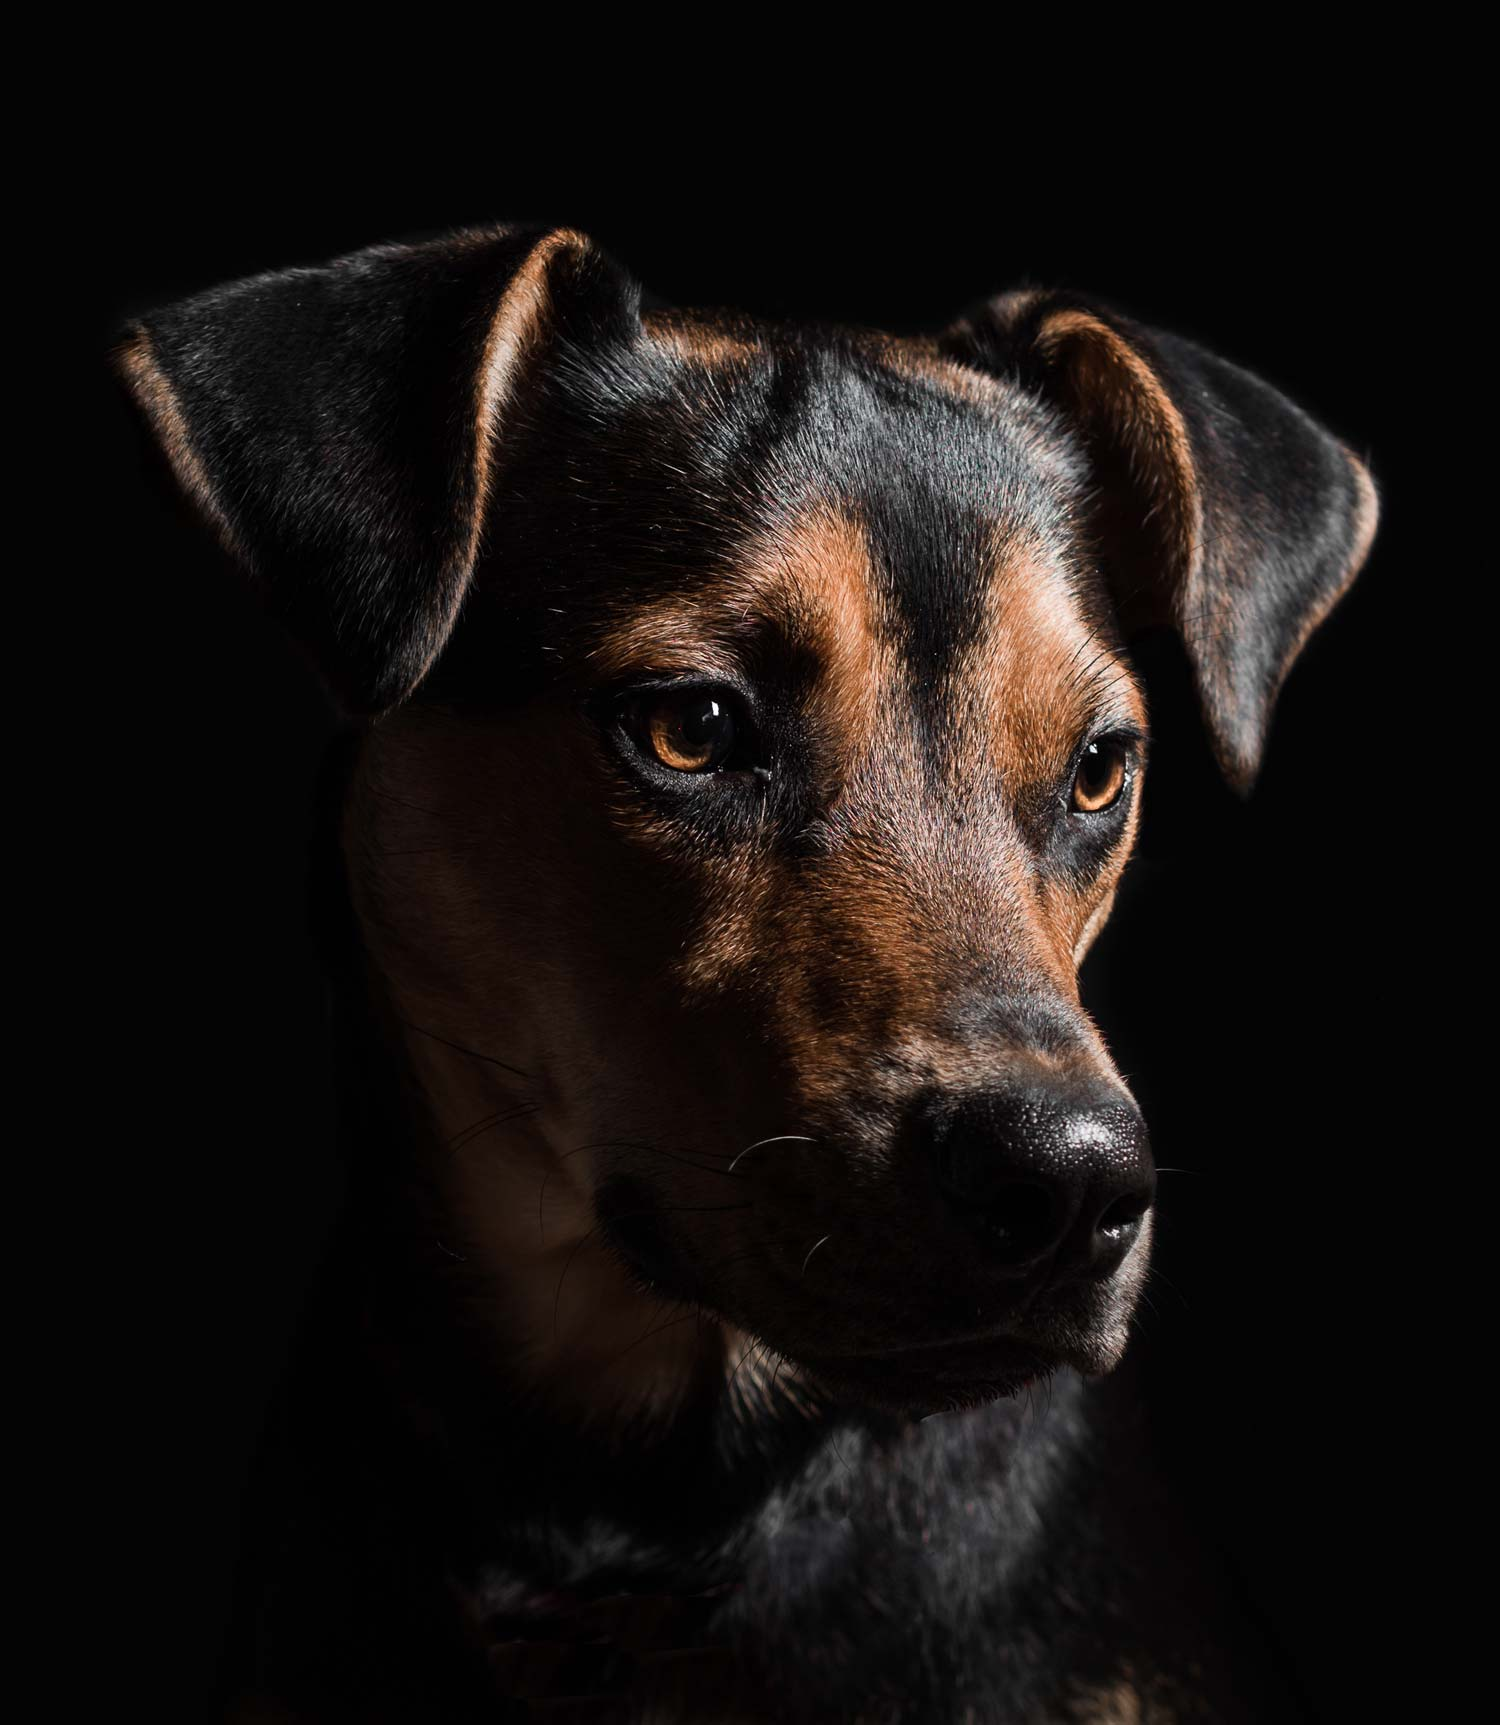 Image of a puppy named Toby taken by Samgold Photography